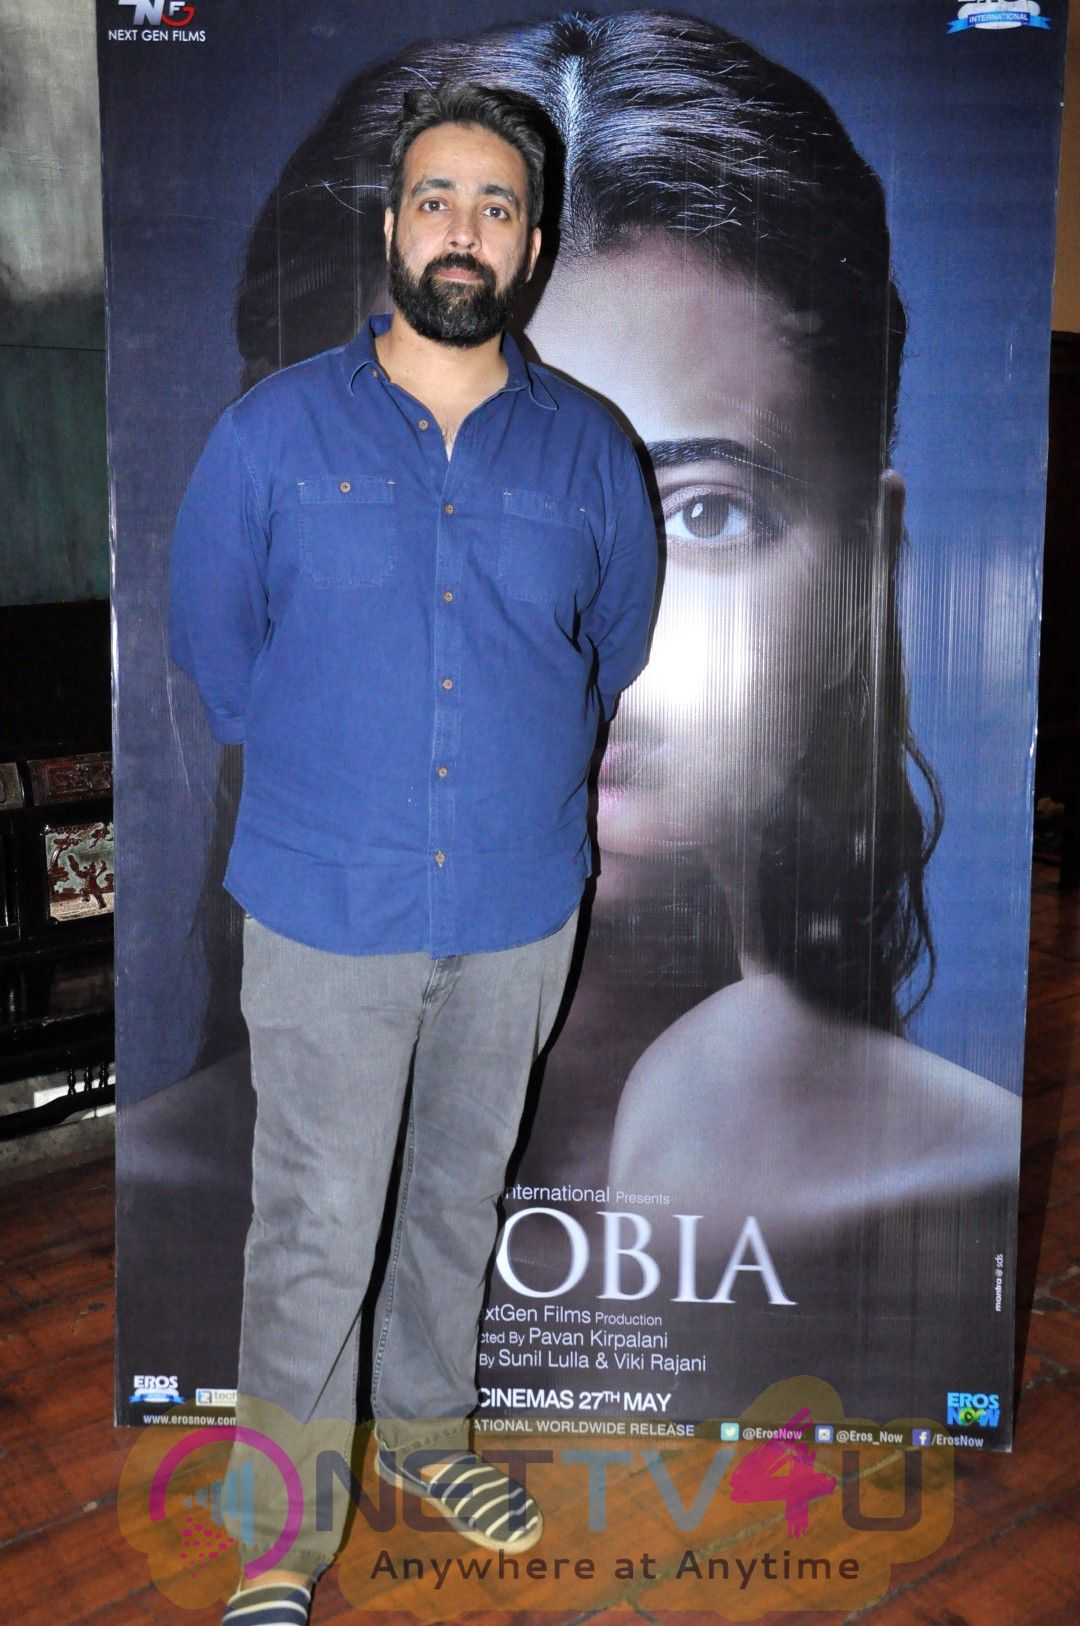 High Quality Photos Of Director Pawan Kripalani Interview For Film Phobia